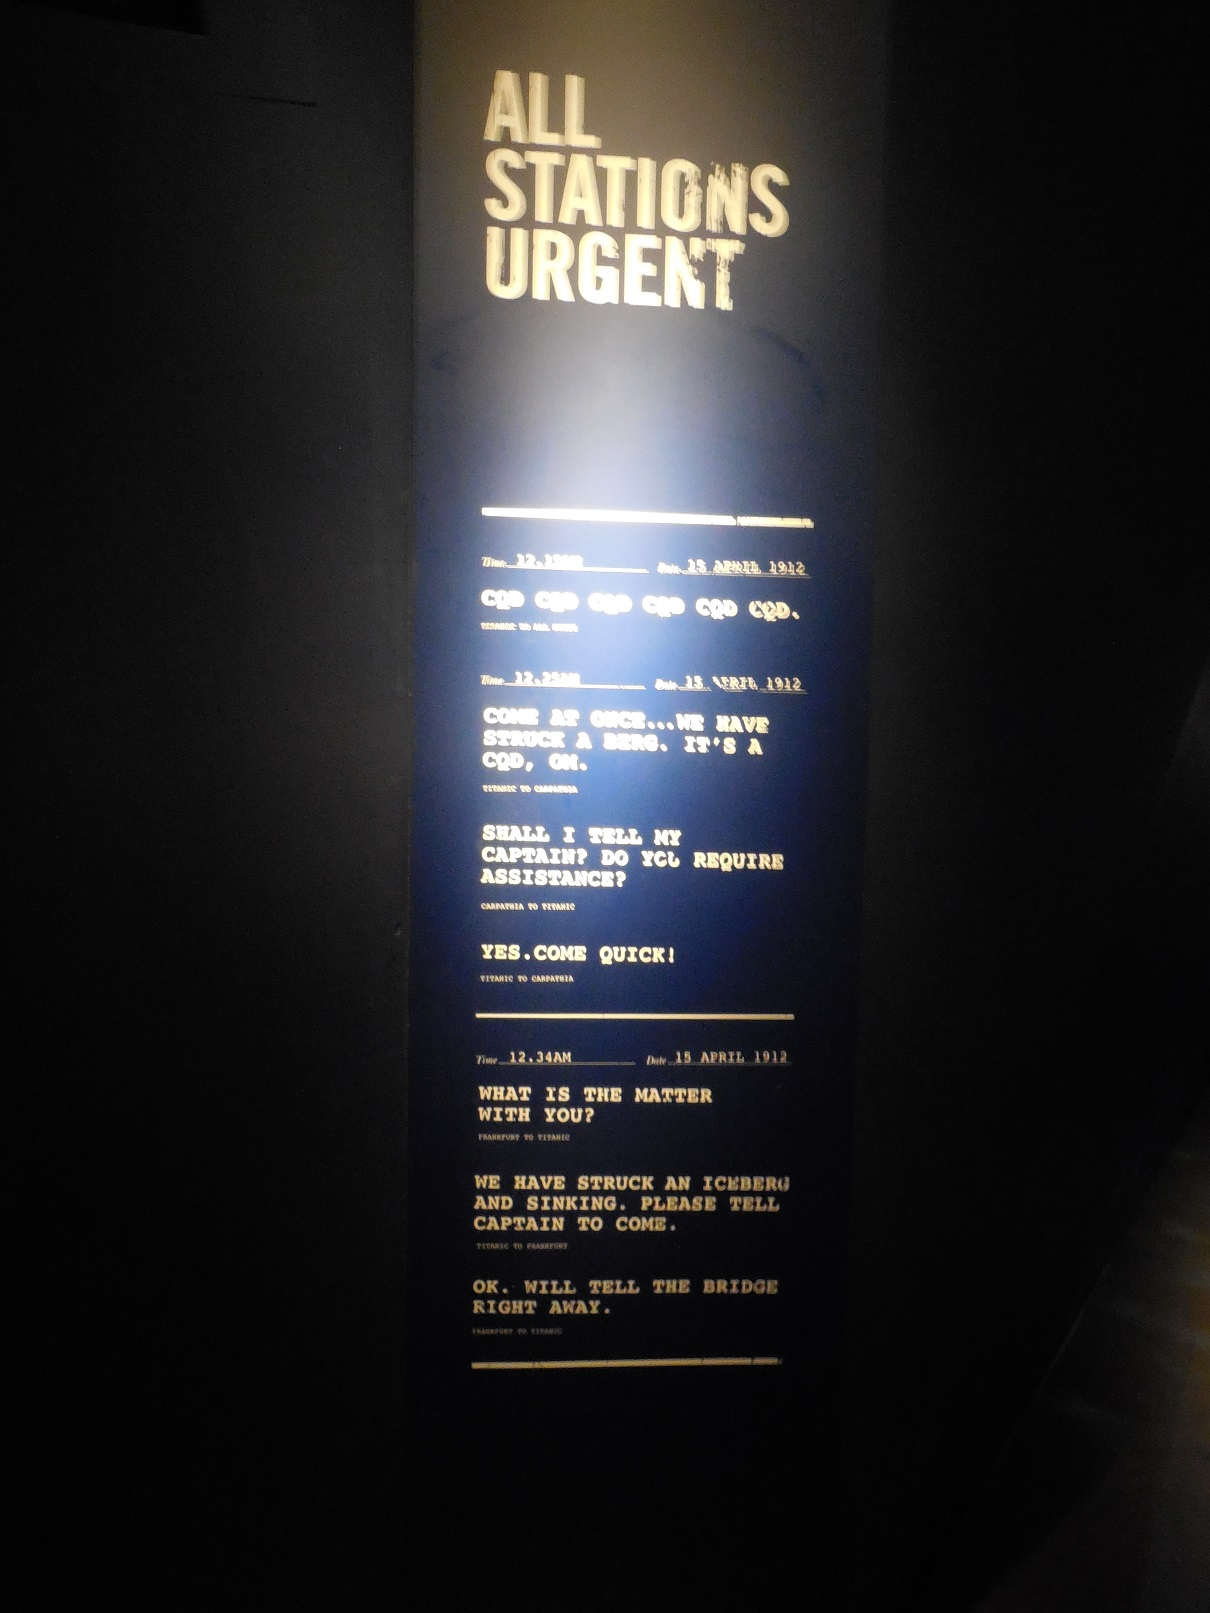 SOS messages from Titanic to Carpathia, exhibit in Londonderry museum